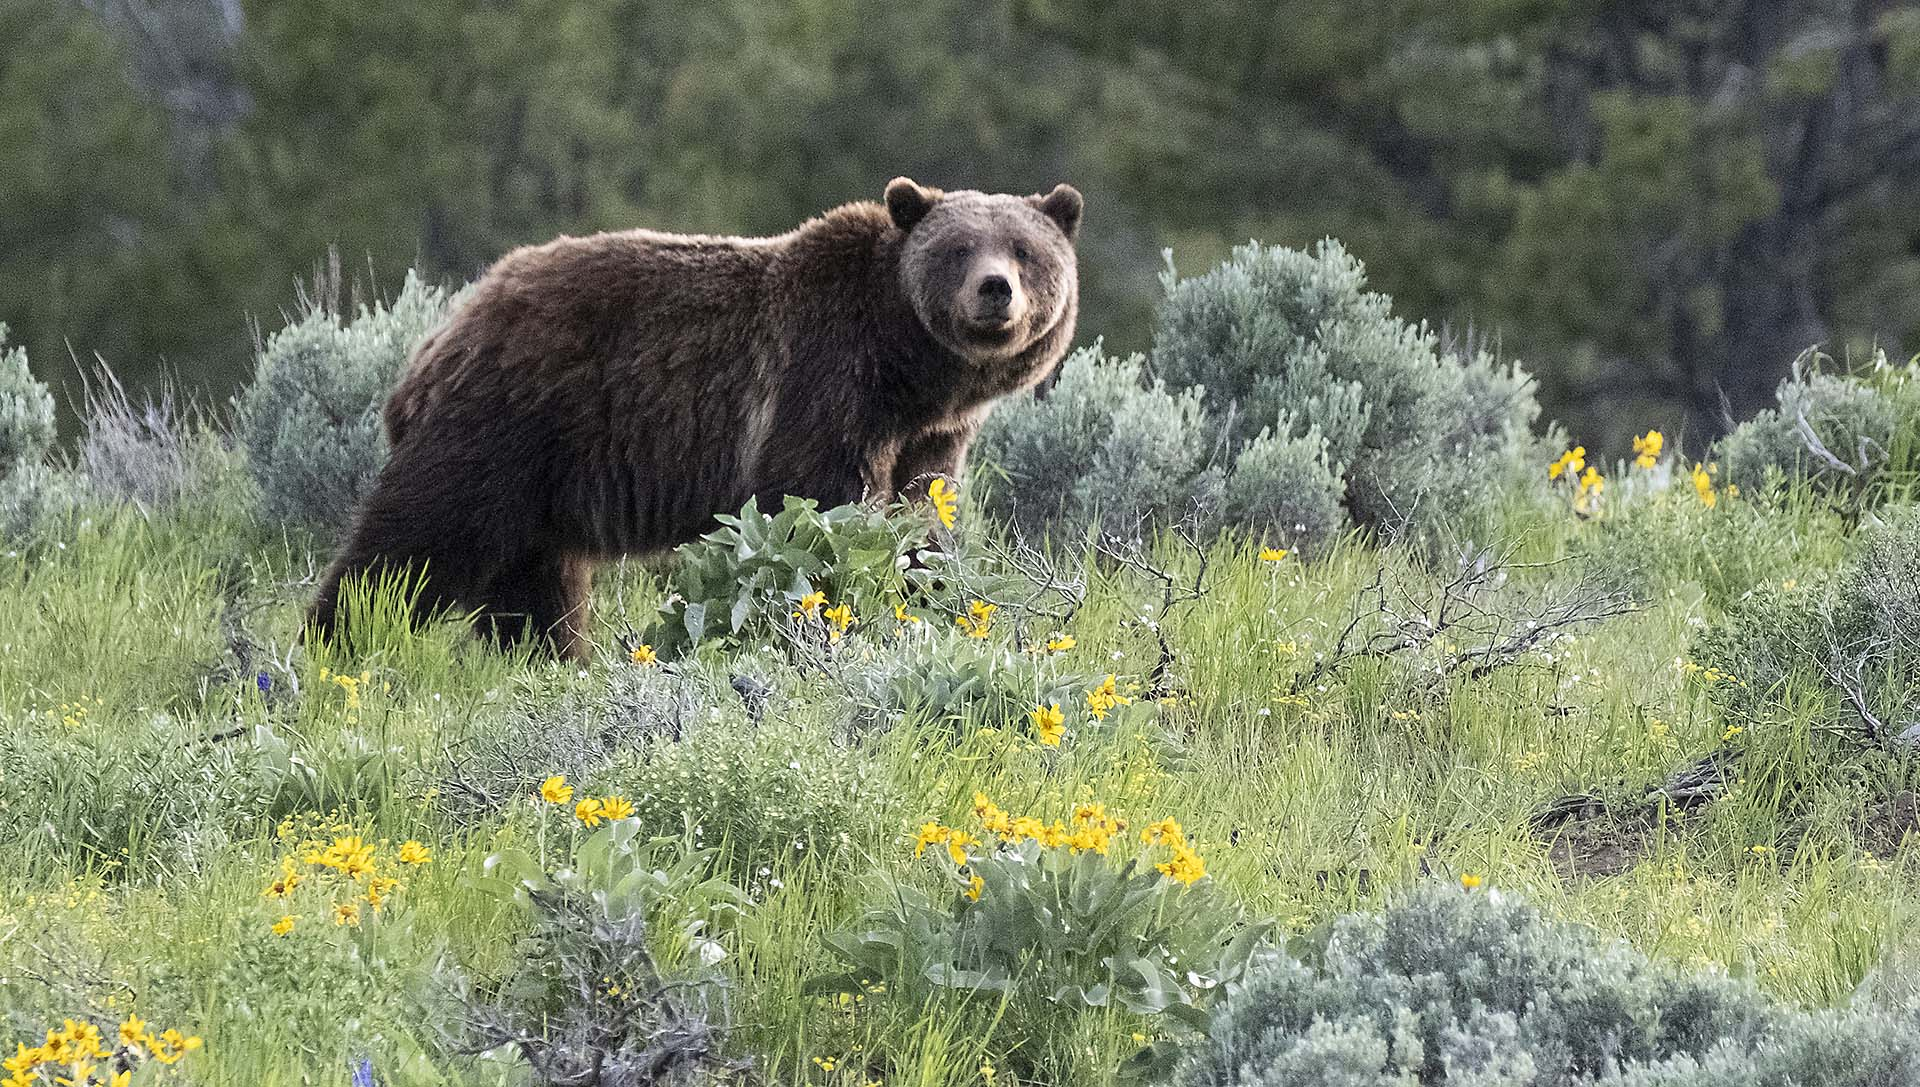 Grizzly Bear 399 in Grand Teton National Park